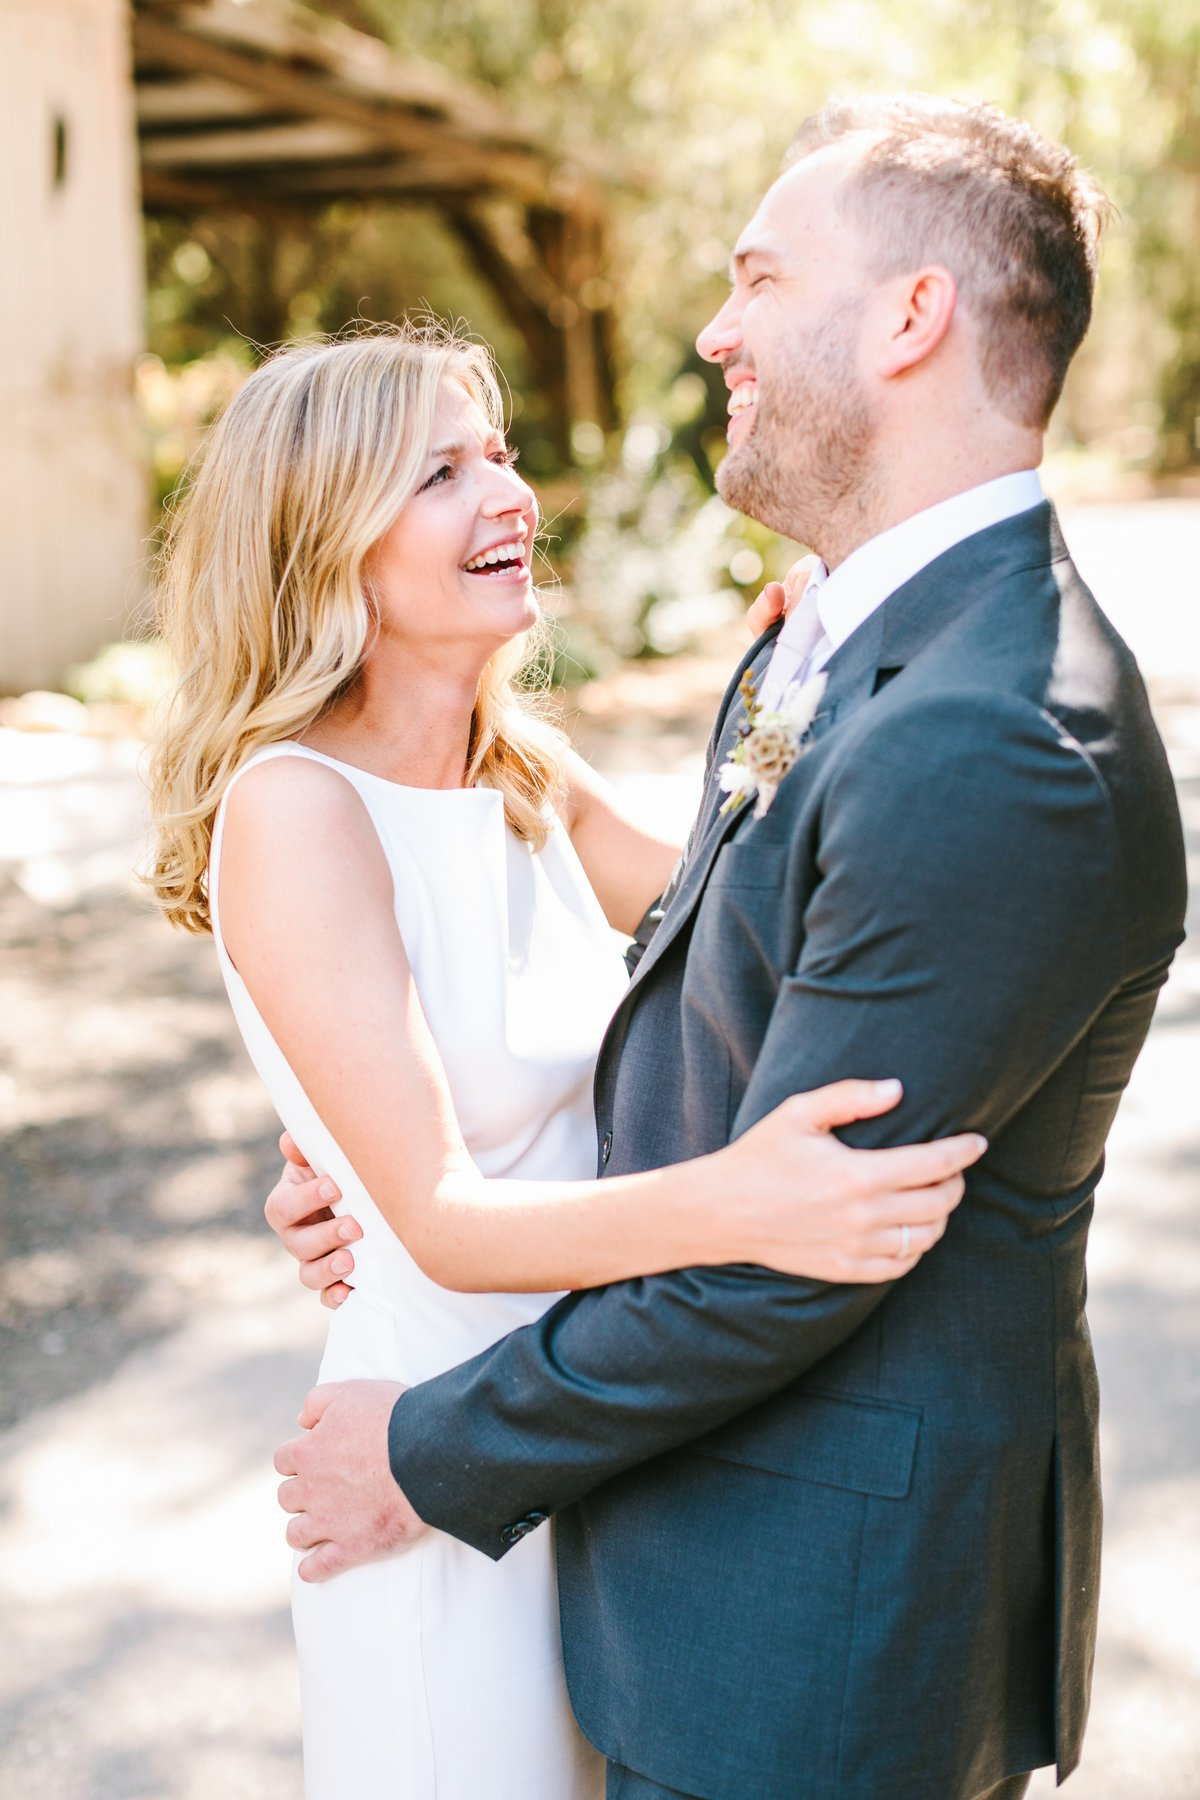 Best California Wedding Photographer-Jodee Debes Photography-78